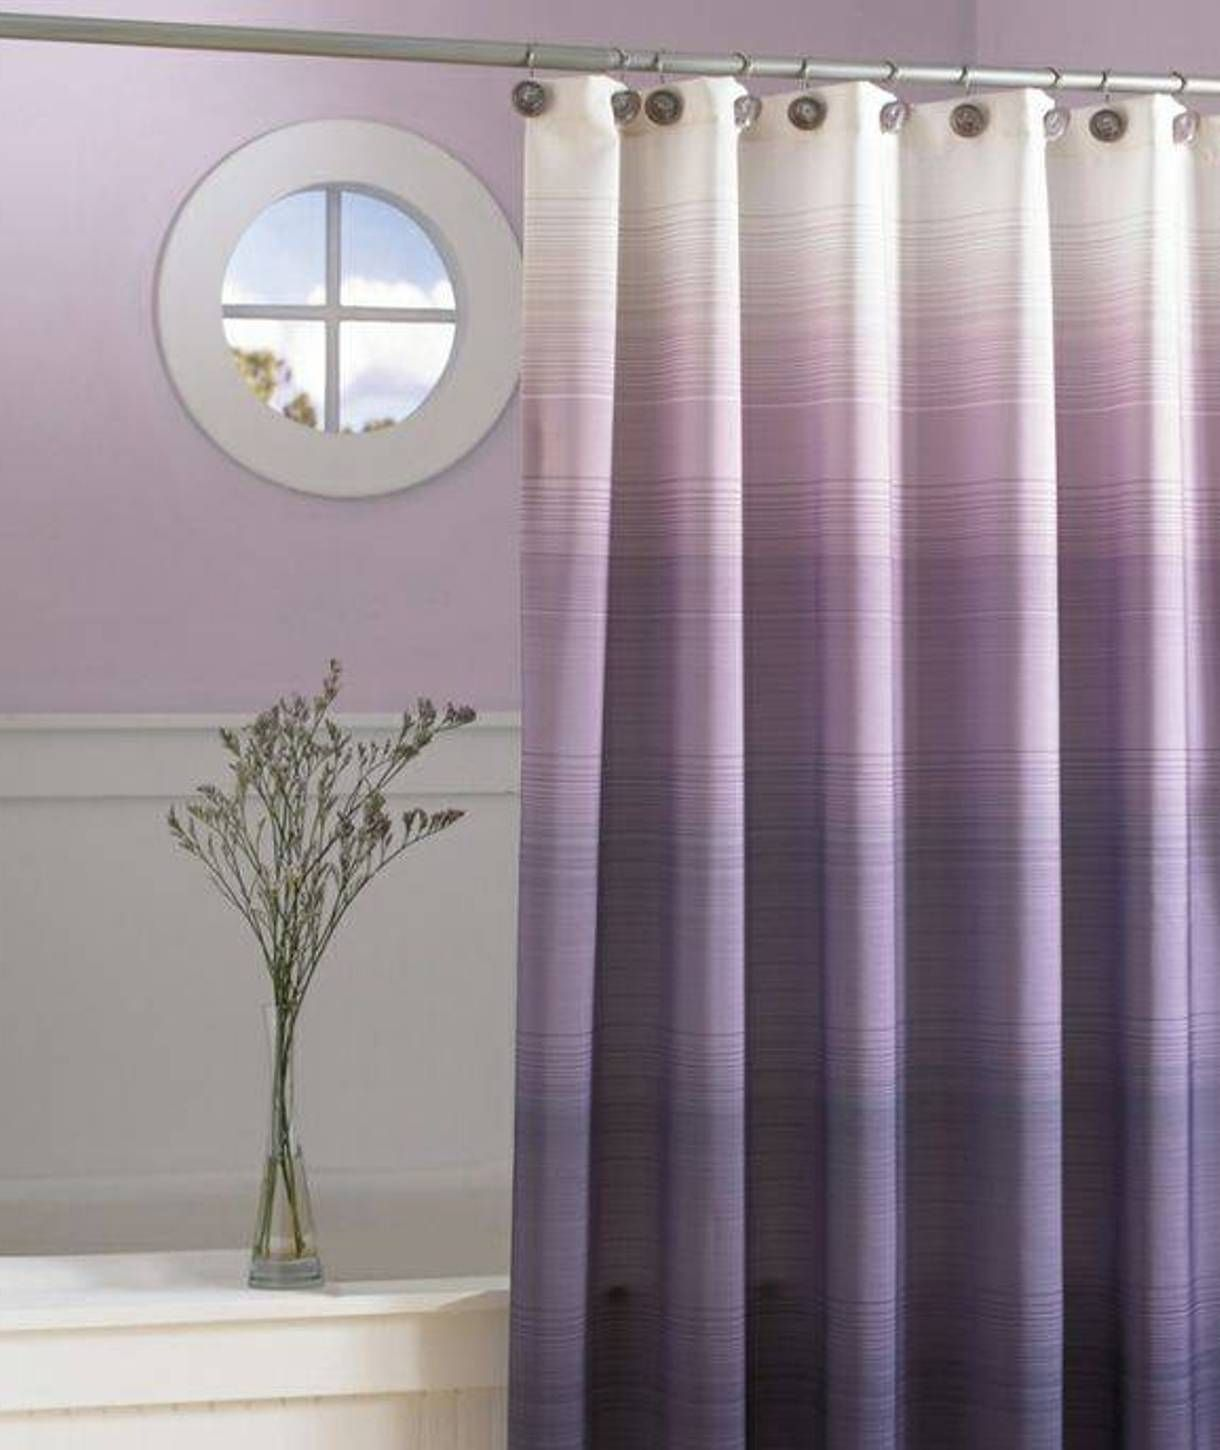 Lavender Shower Curtains Purple Ombre Modern Shower Curtain : For ...